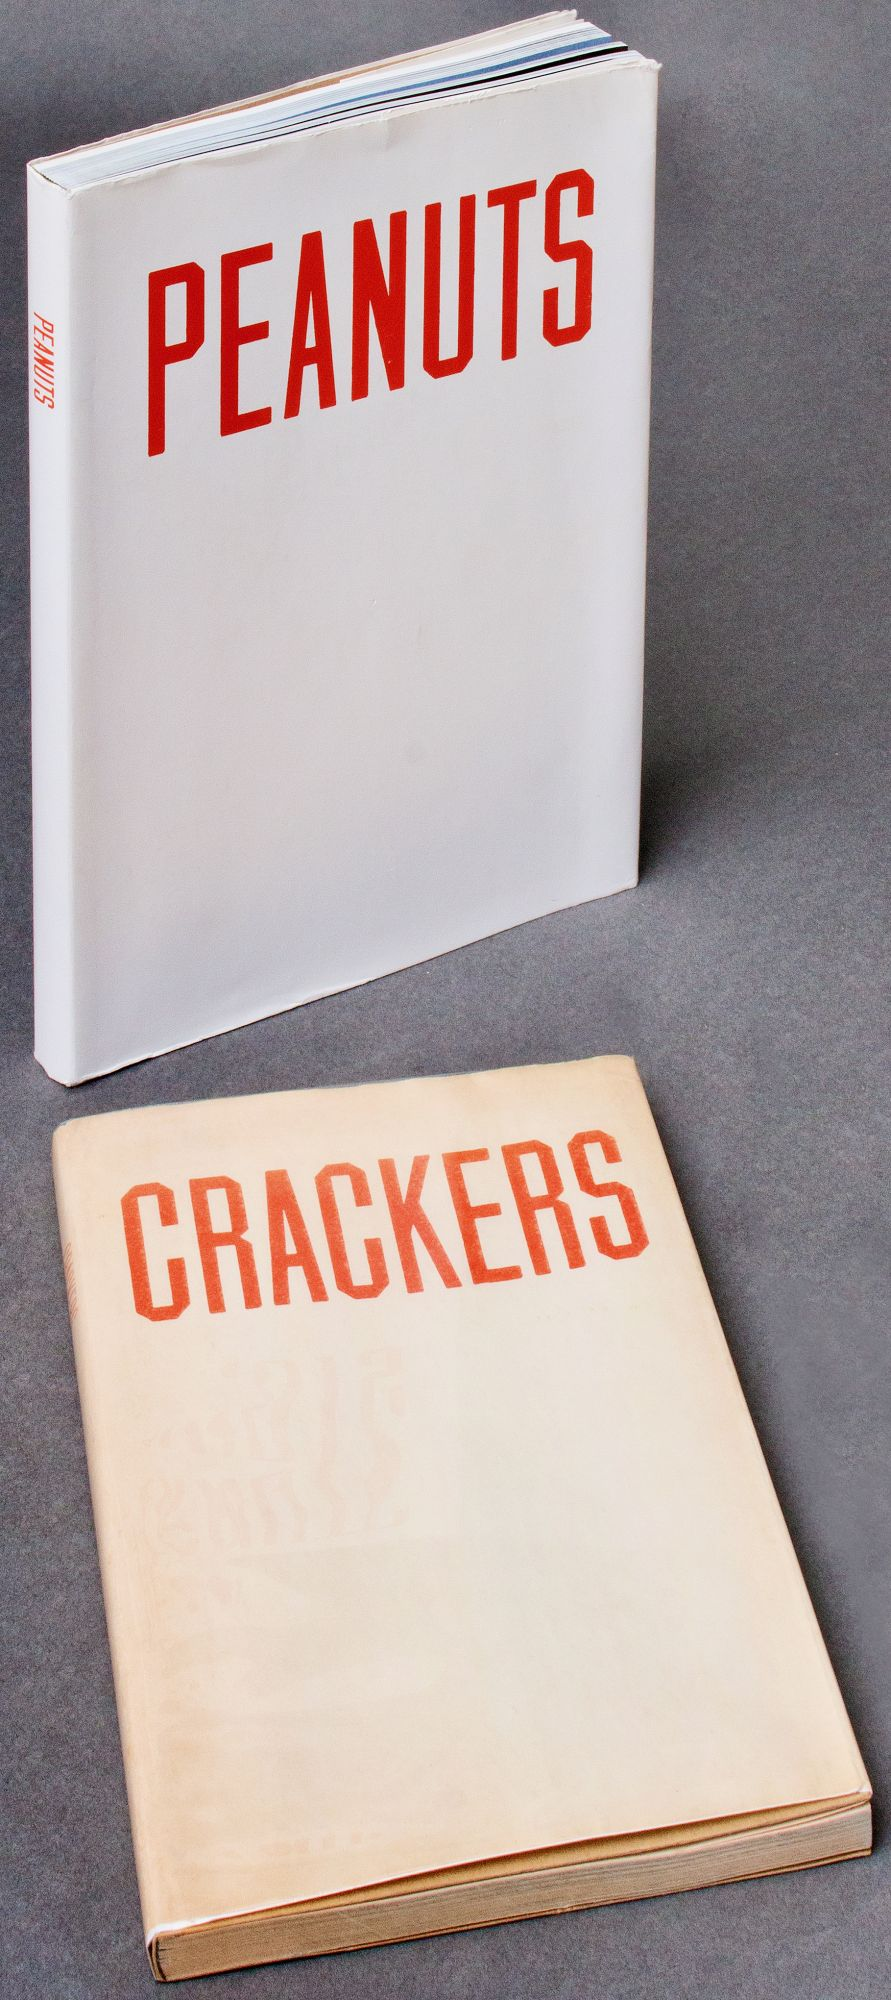 Photo books] Crackers; [together with] Peanuts